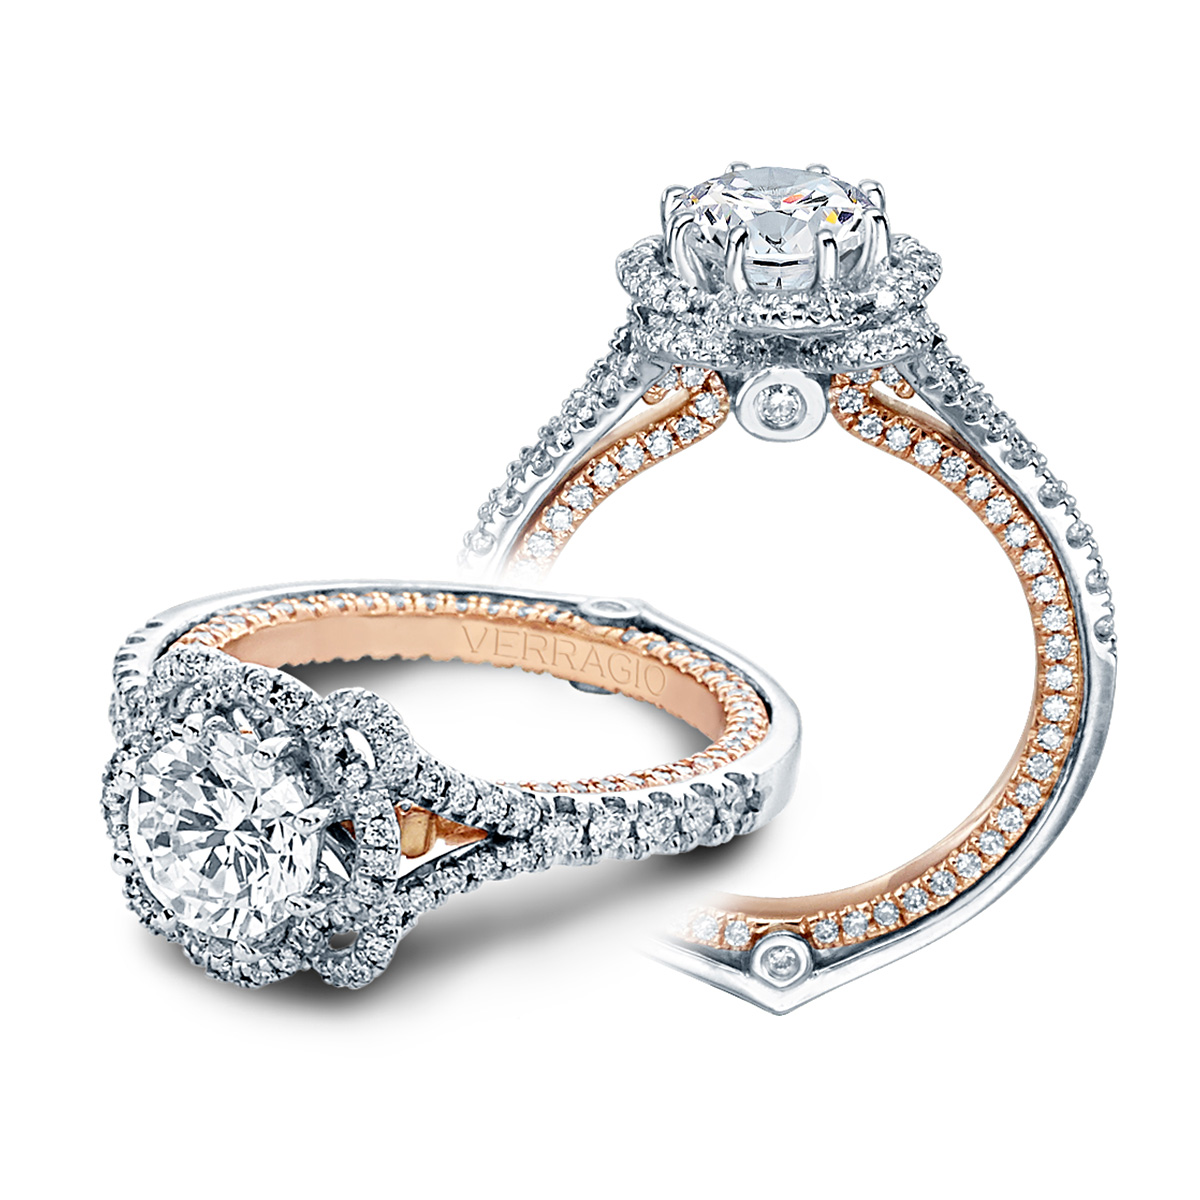 Verragio Couture-0426DR-TT Platinum Engagement Ring